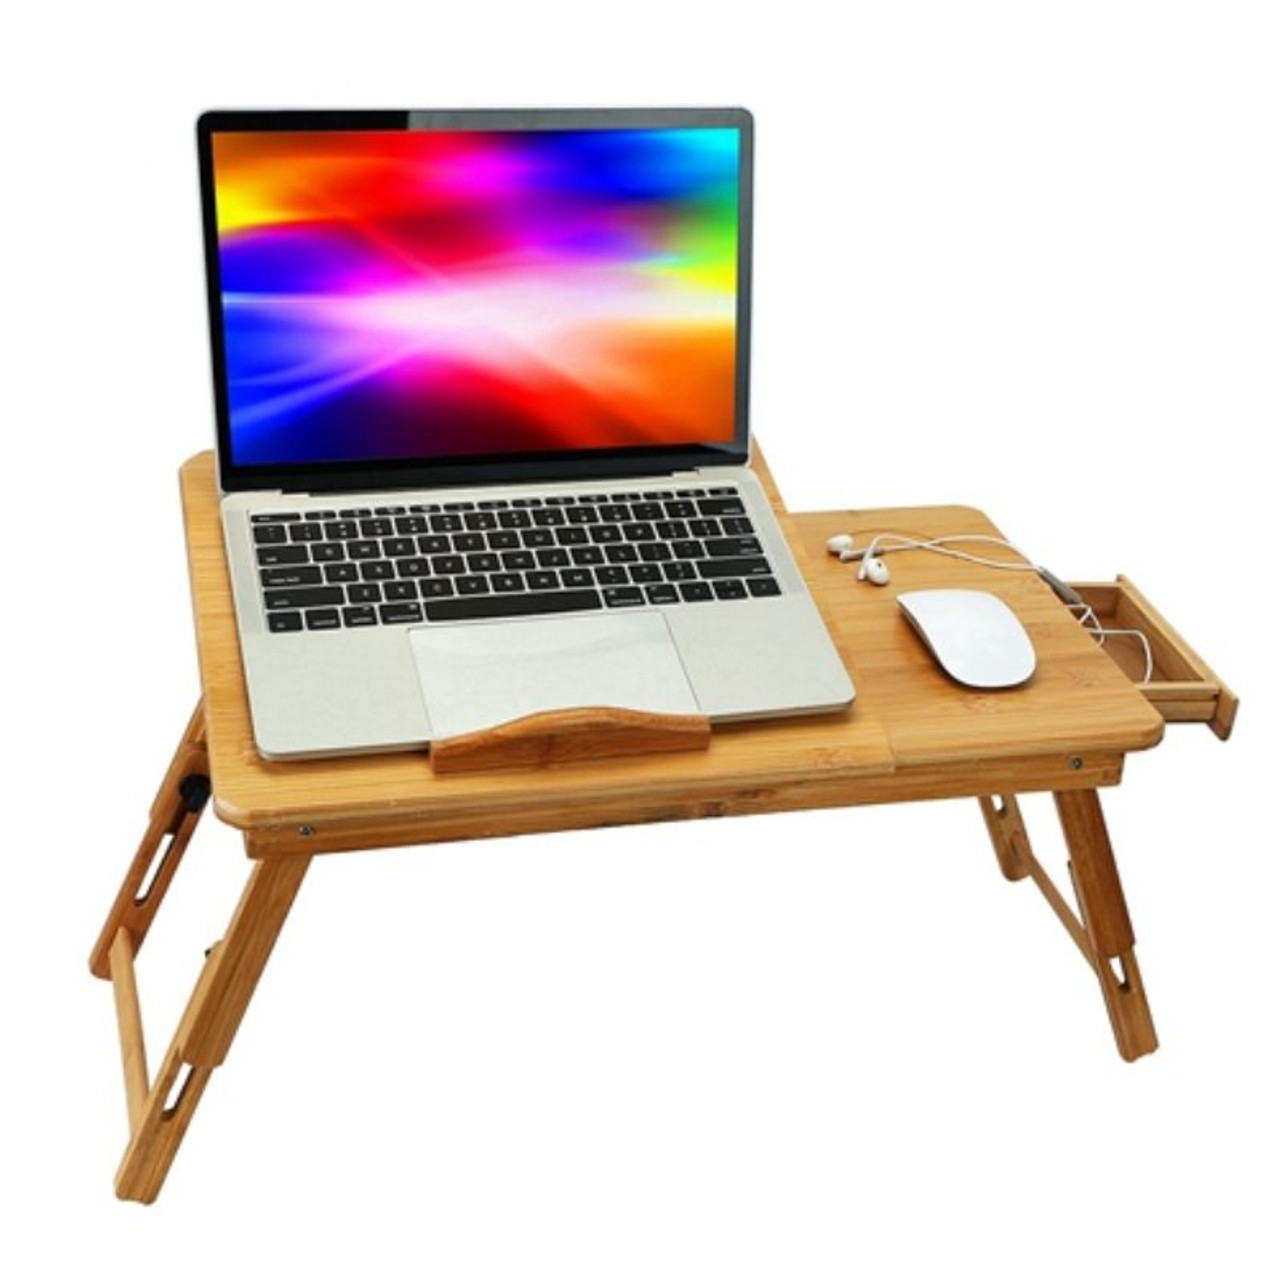 Bamboo Serving Tray, Laptop Pad, Foldable and Adjustable Side Storage